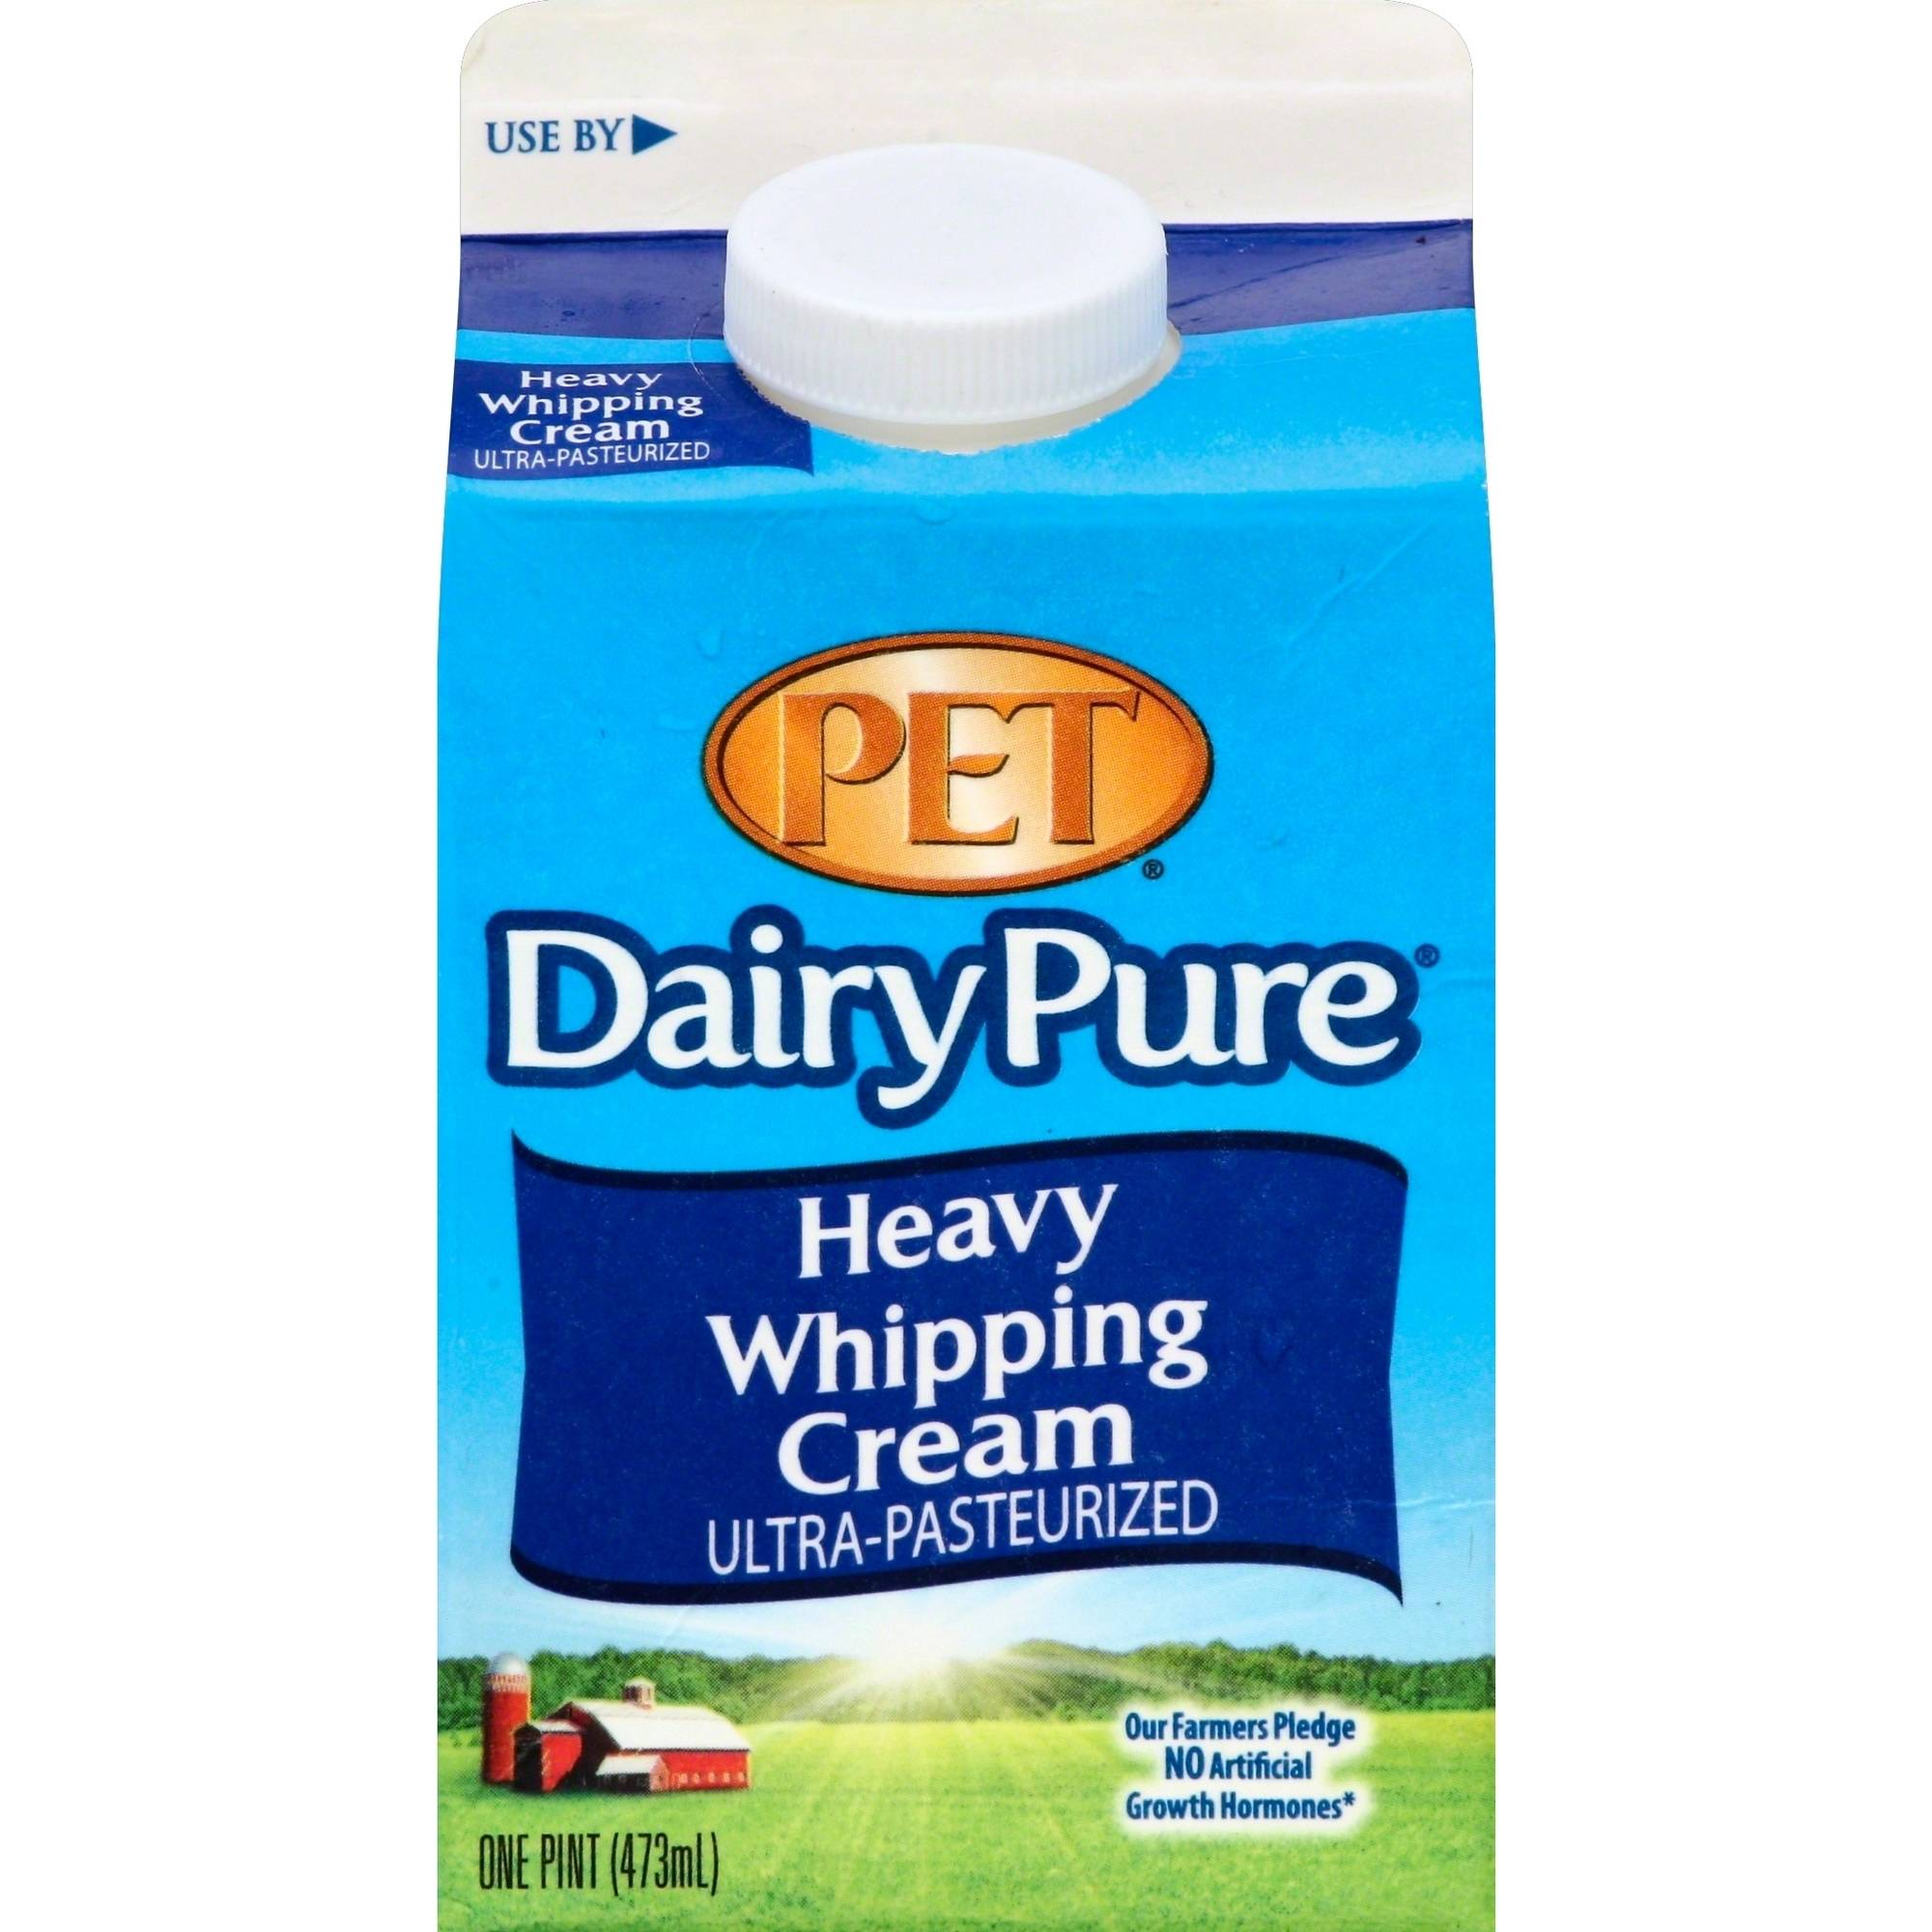 Pet Dairy Pure Ultra-Pasteurized Heavy Whipping Cream,  1 pt